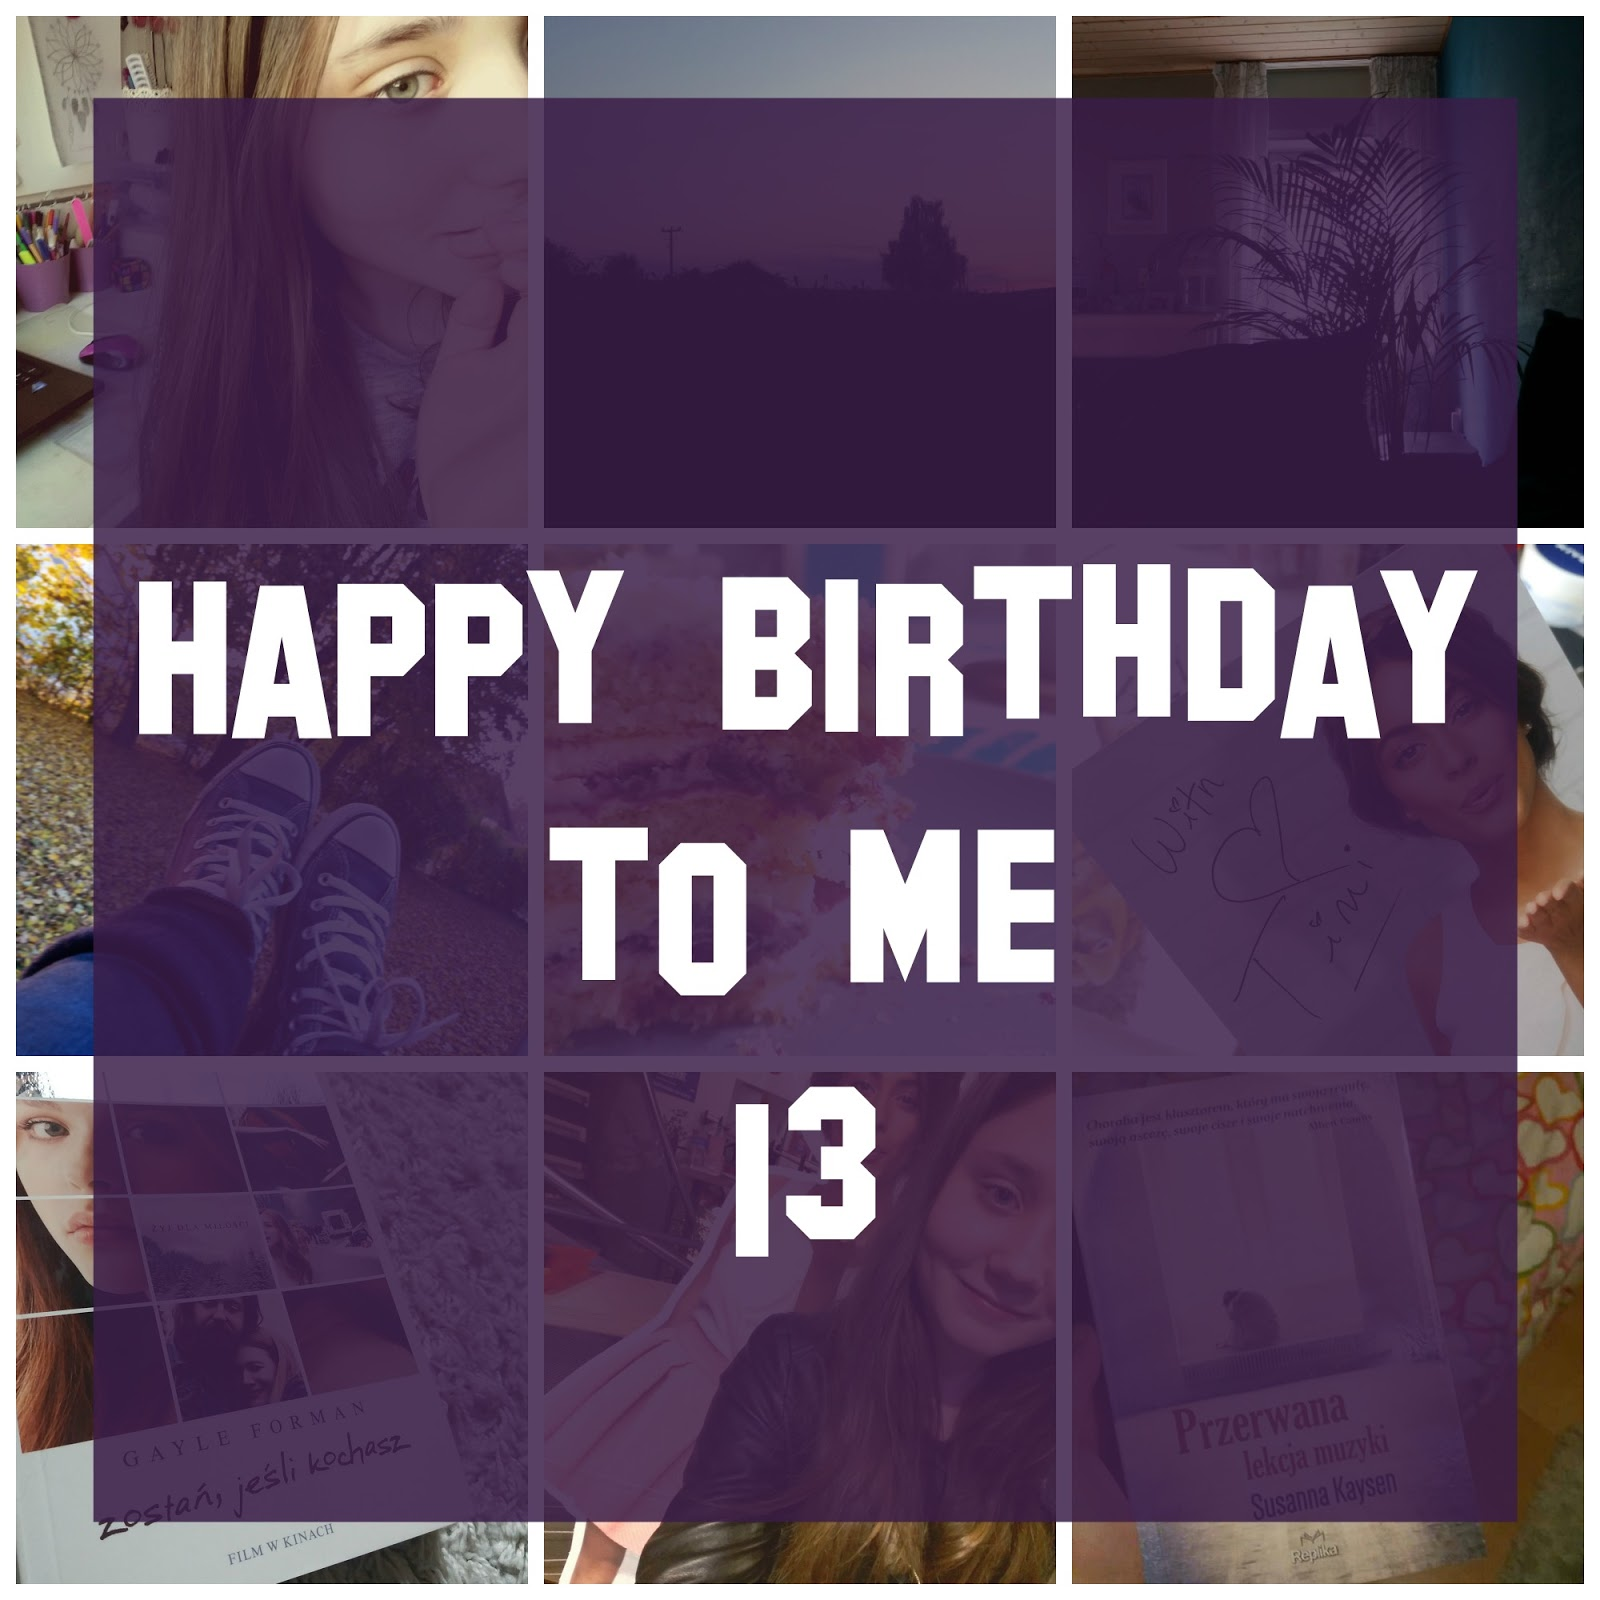 Happy birthday to me | 13